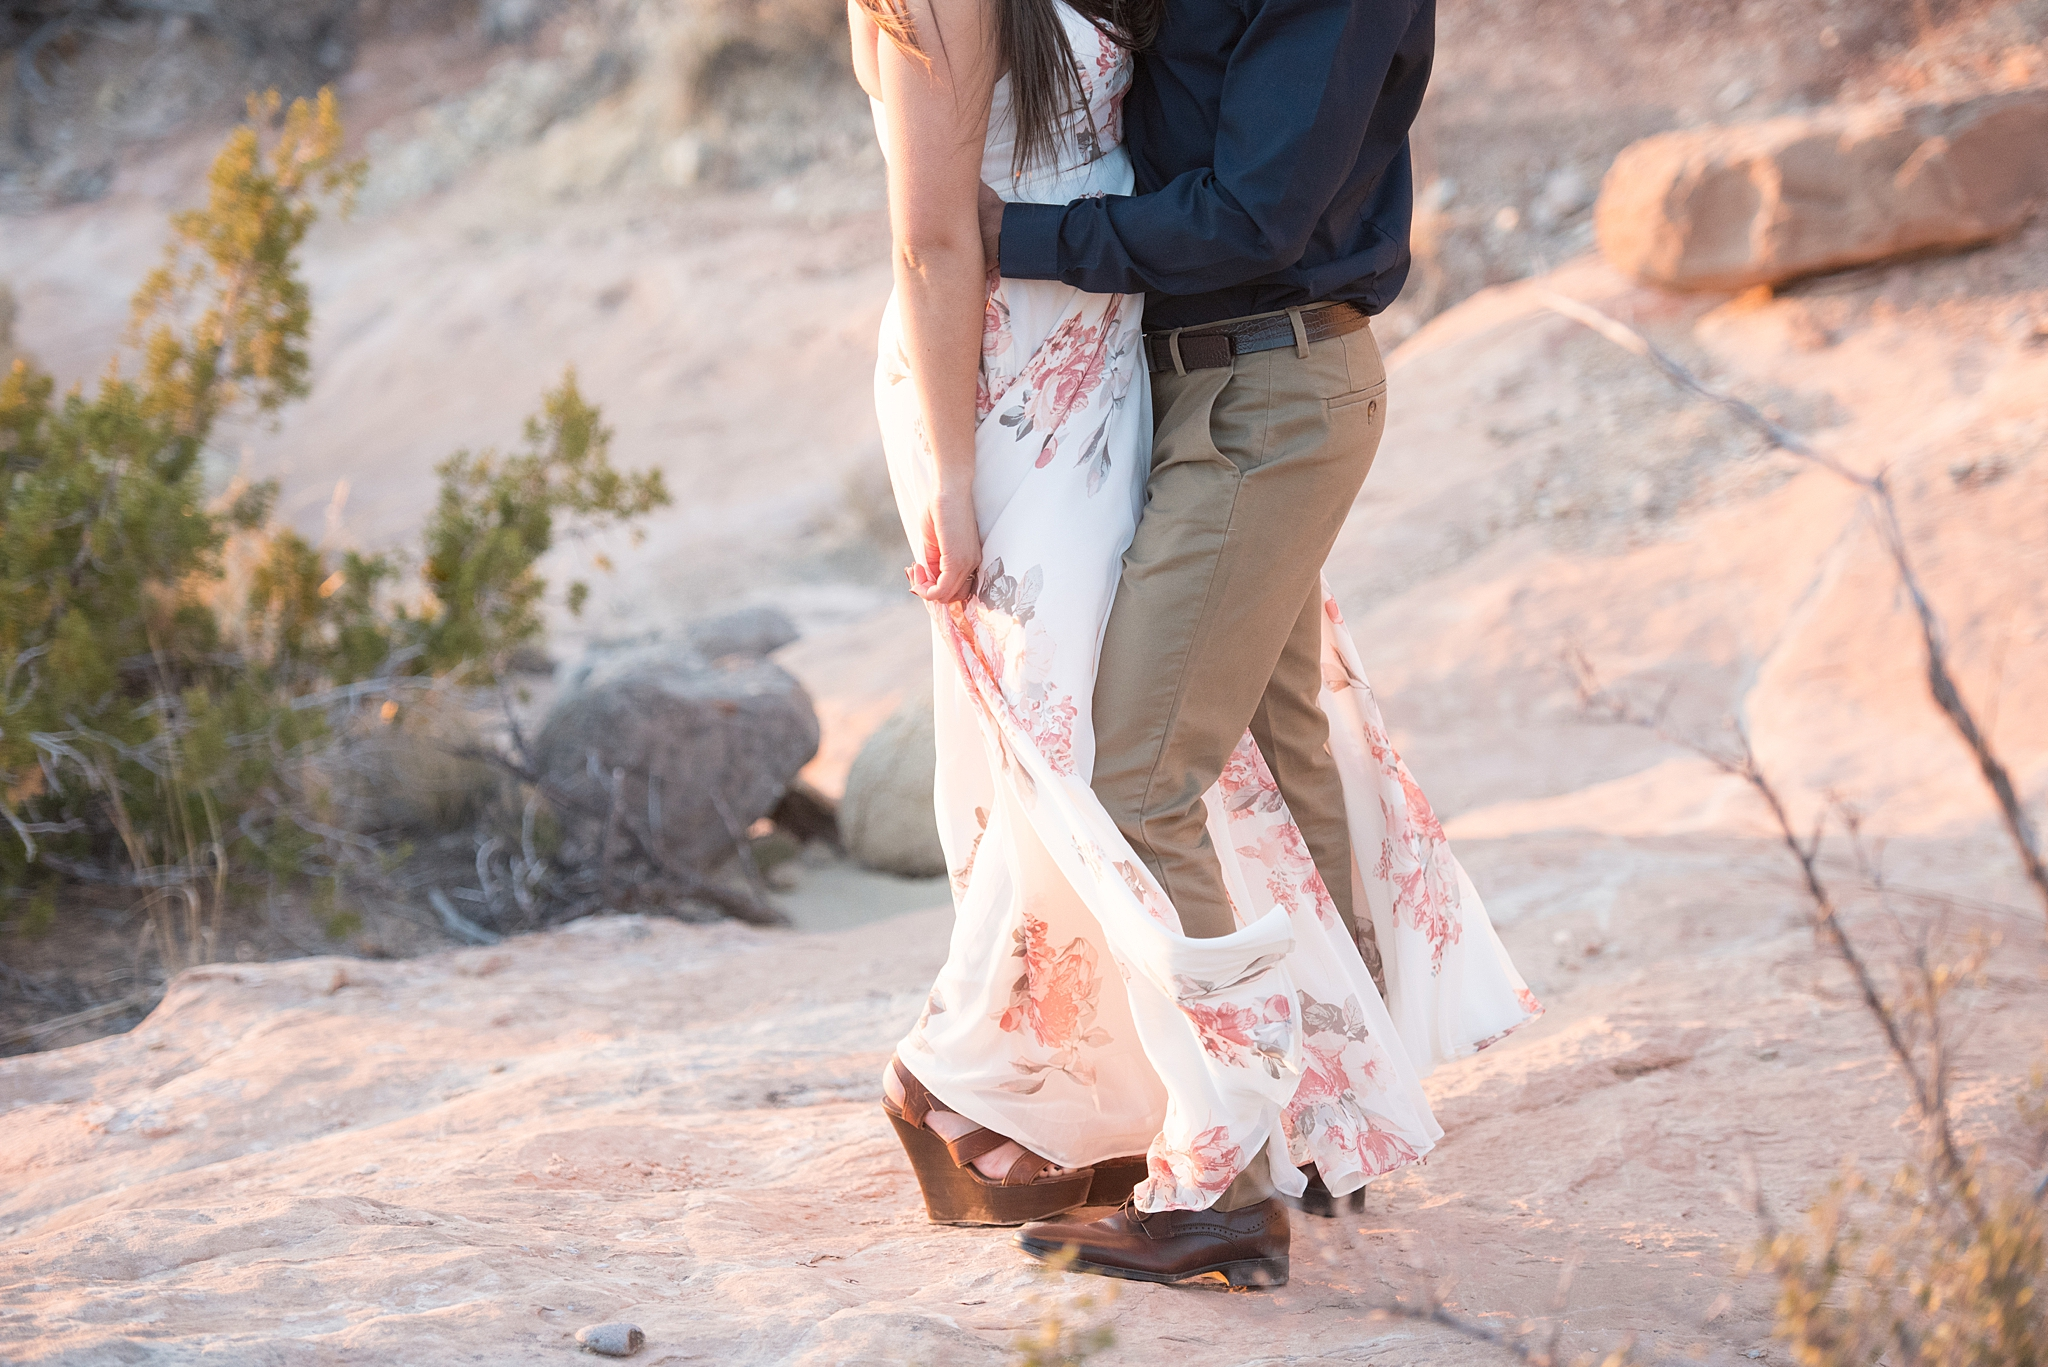 bosque brewery engagement session placitas mountains foothills albuquerque wedding photography new mexico wedding photographer kayla kitts photography_0018.jpg